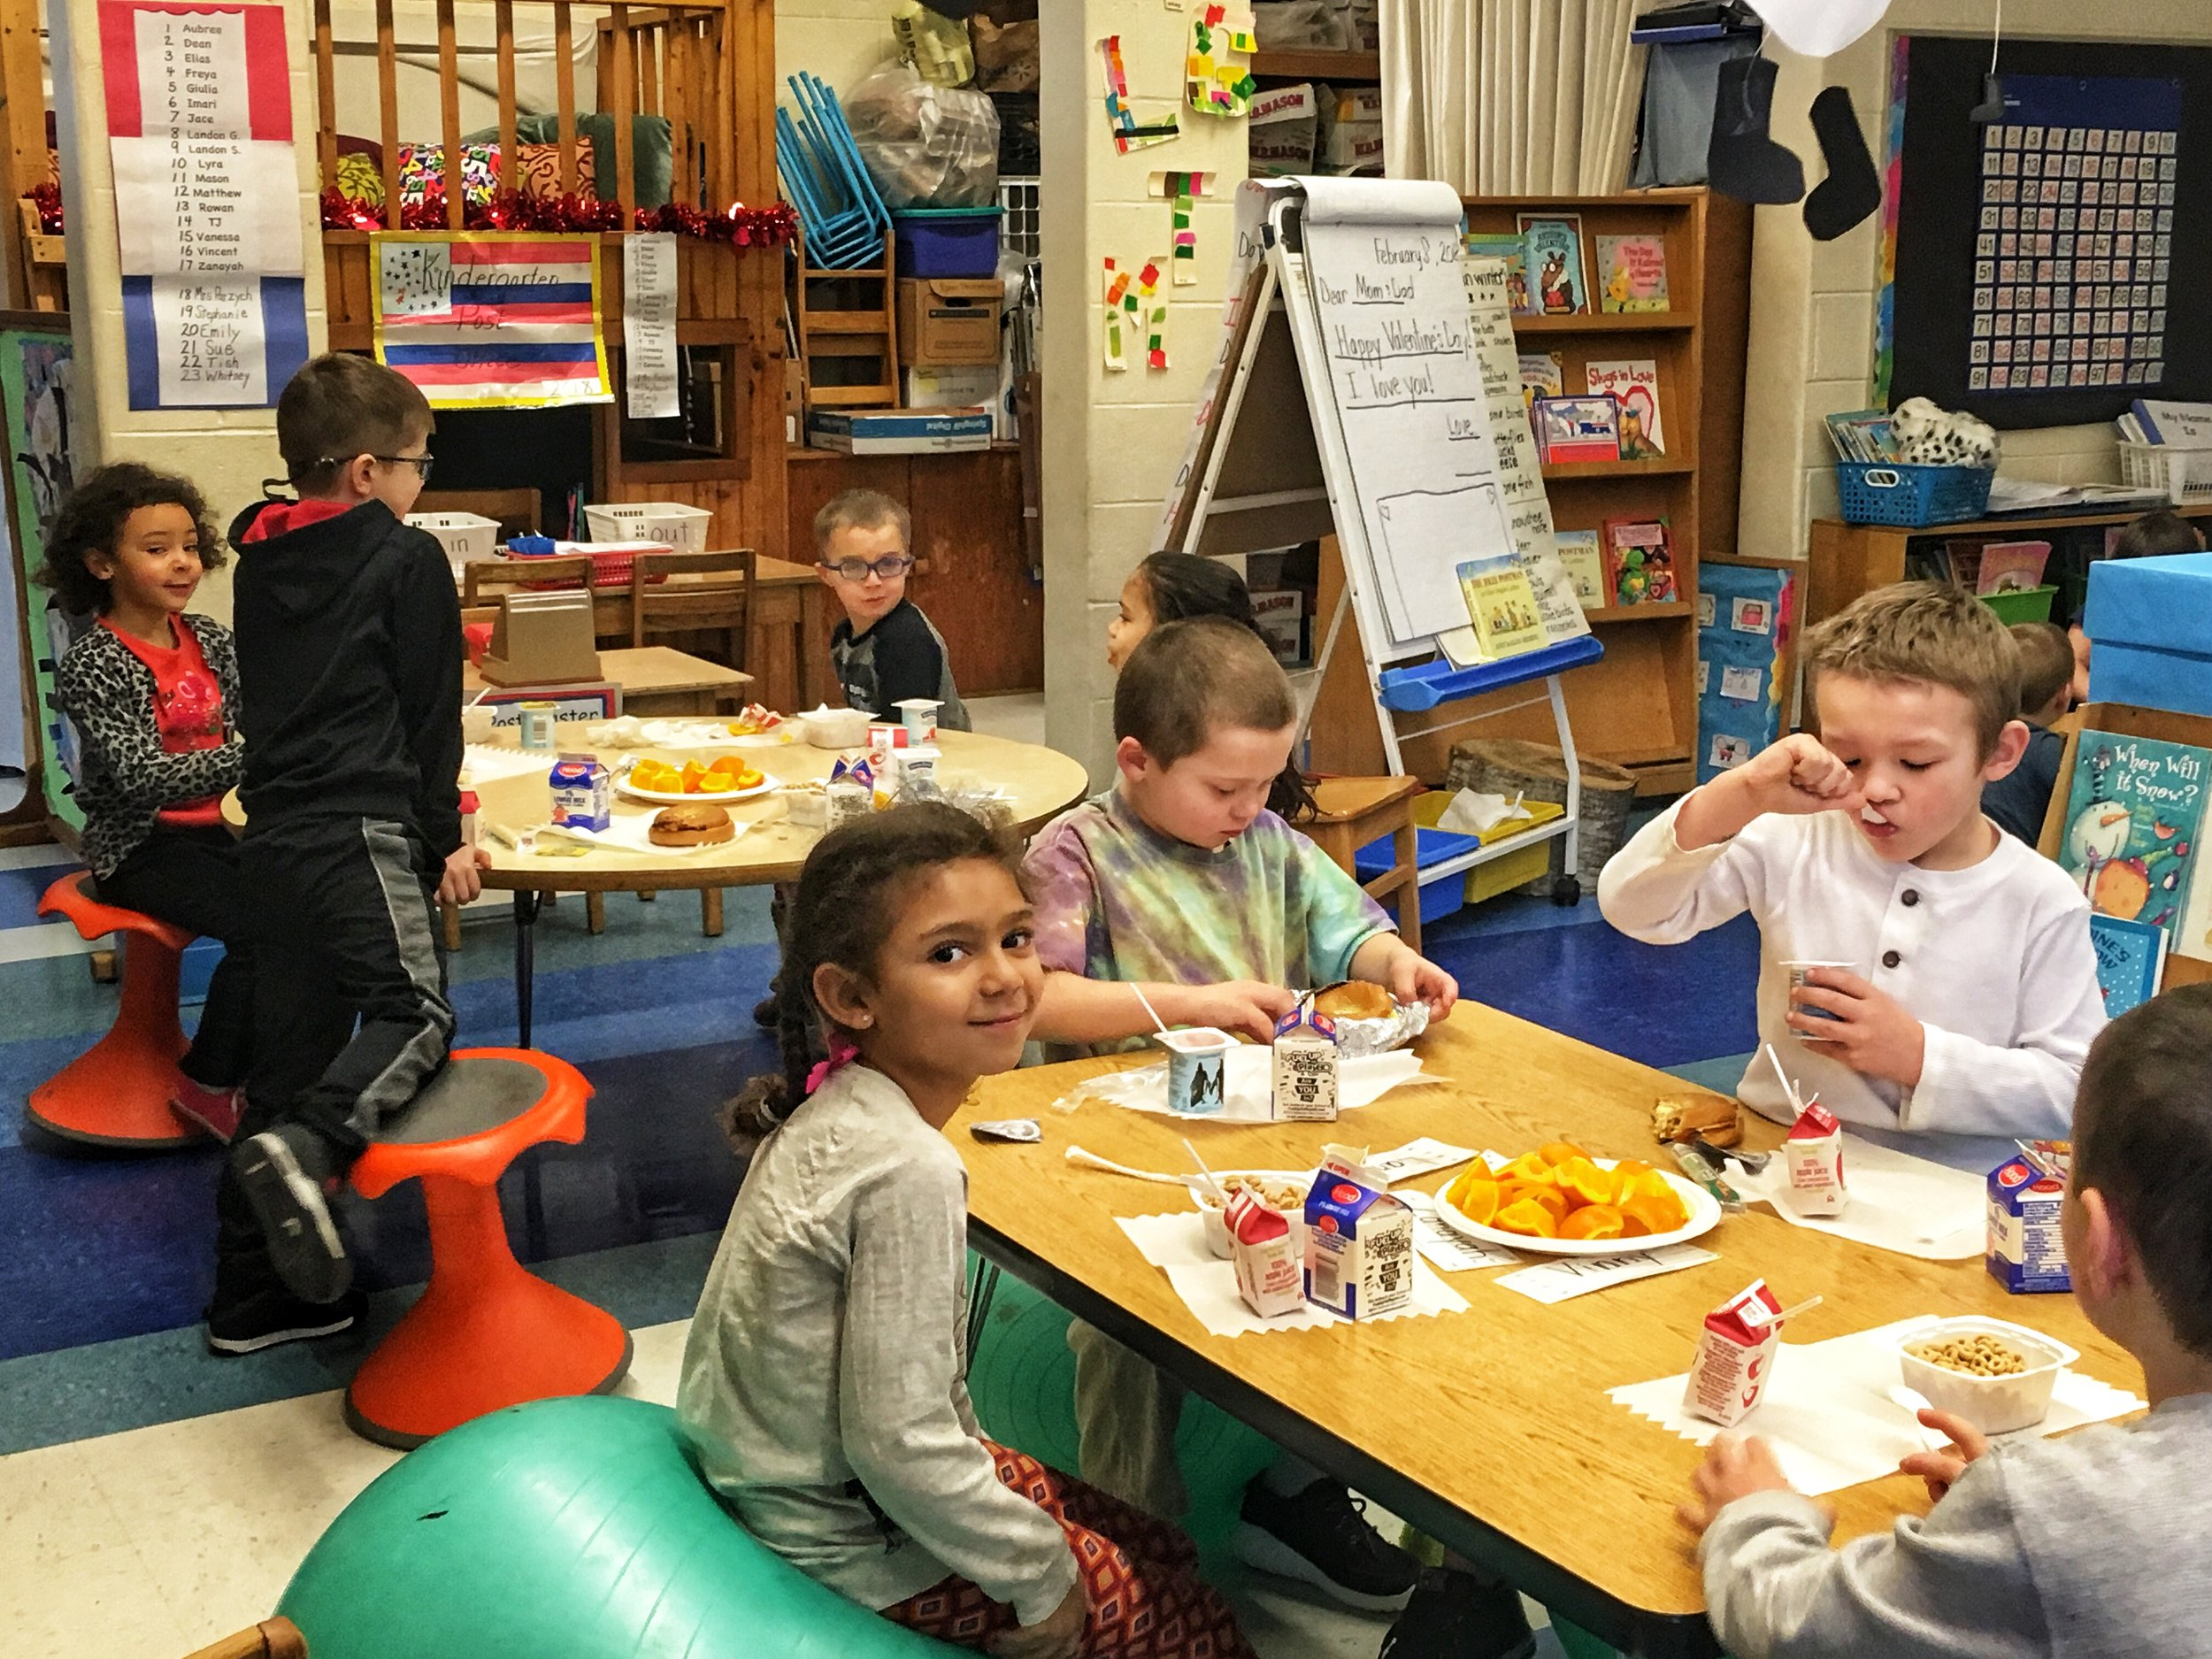 CLASSROOMS & GARDENS - Harvest of the Month ResourcesVT Feed Resource LibraryGreen Mountain Farm-to-School Activities GuideVermont Community Garden NetworkFit and Healthy Kids Toolkit